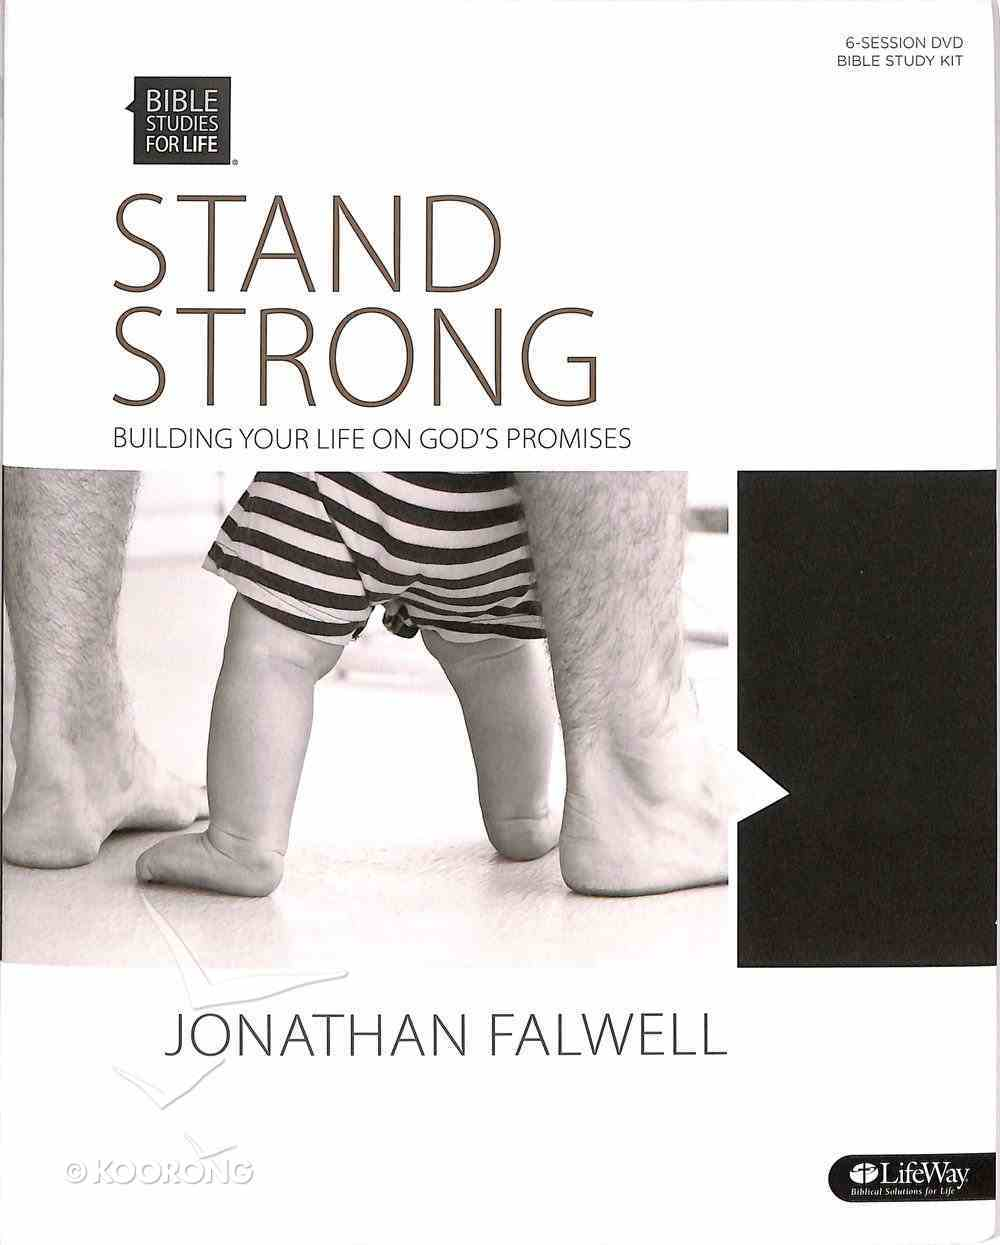 Stand Strong Building Your Life on God's Promises (Leader Kit) (Bible Studies For Life Series) Pack